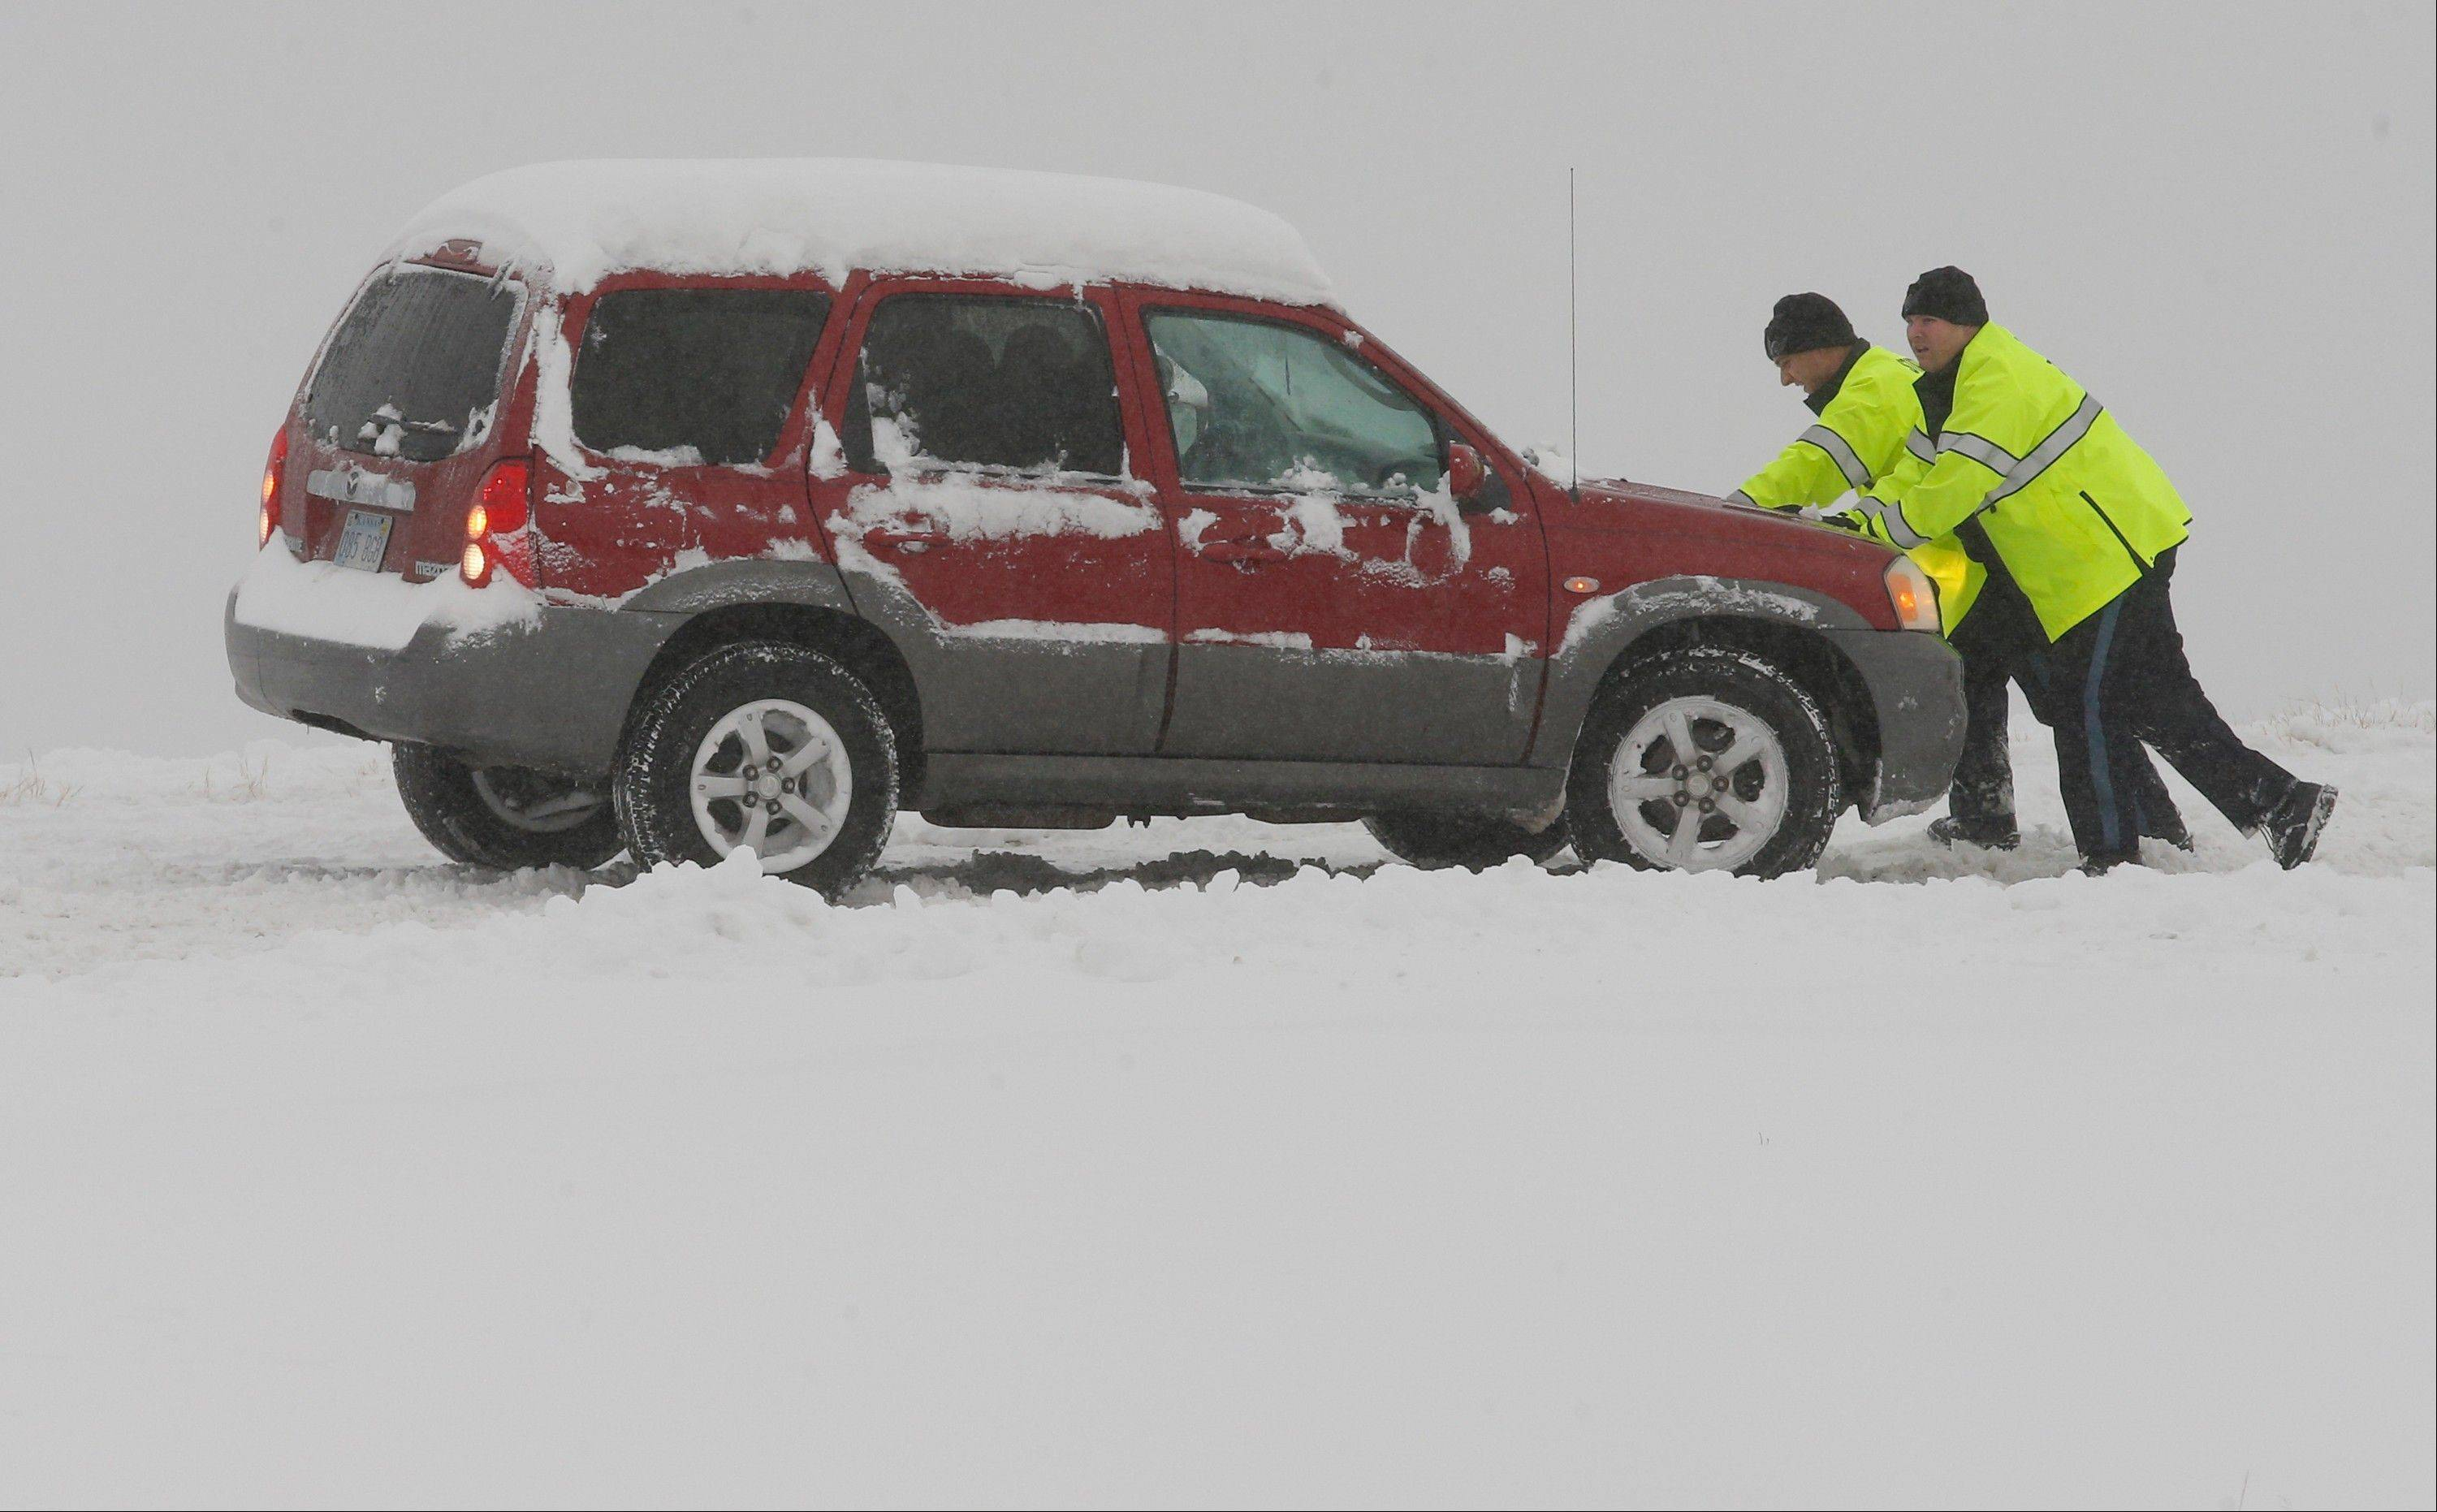 Motorist attempt to push a car back on the road in Wichita, Kans. Thursday, Feb 21, 2013. Numerous cars and trucks were stuck or off the road as nearly a foot of snow fell across the area. Kansas was the epicenter of the winter storm, with parts of Wichita buried under 13 inches of still-falling snow, but winter storm warnings stretched eastern Colorado through Illinois.